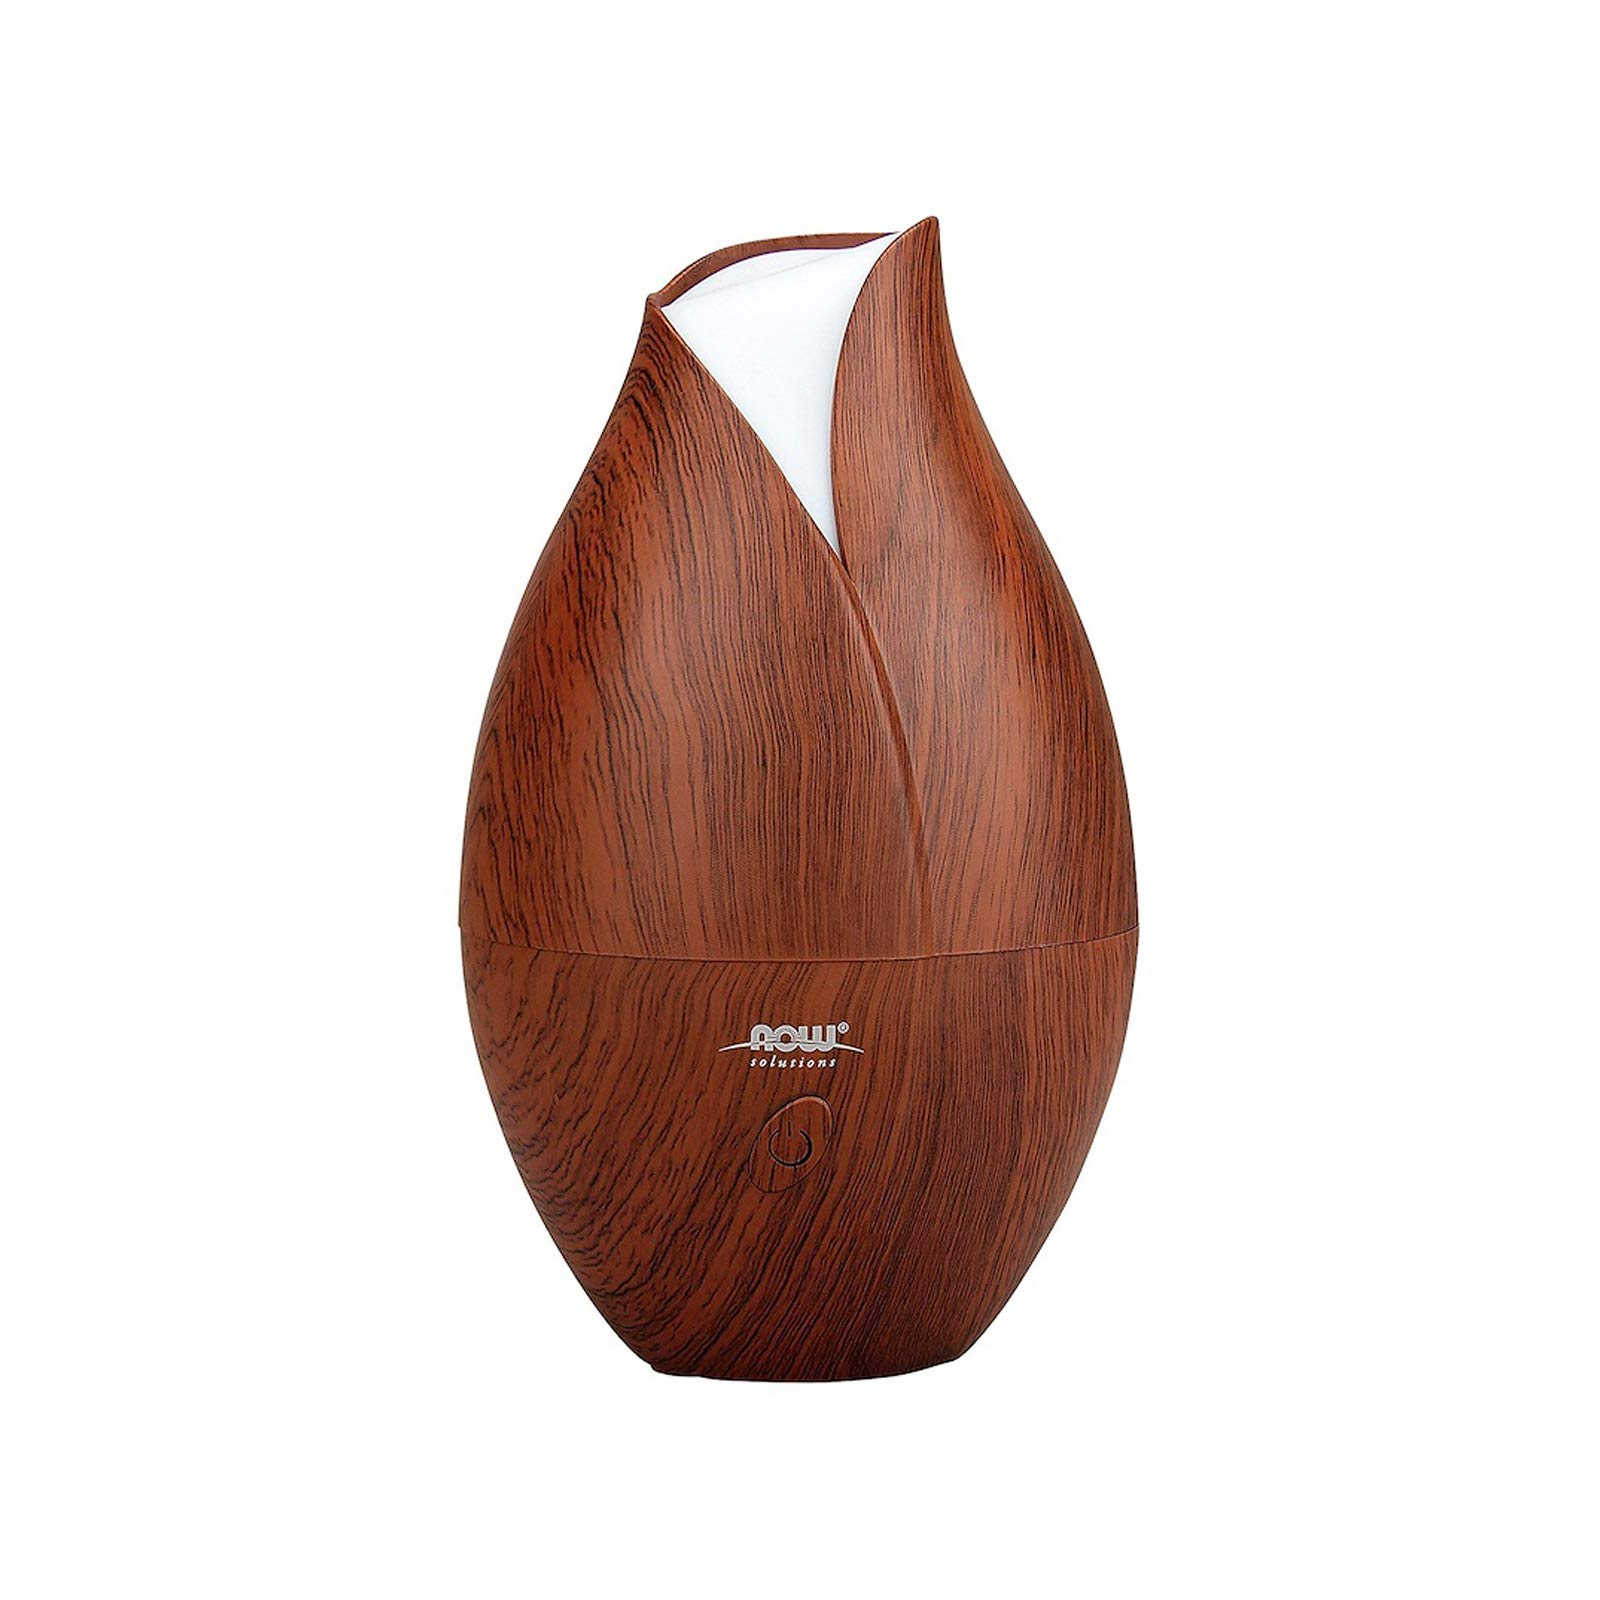 NOW Essential Oils, Ultrasonic Faux Wood Aromatherapy Oil Diffuser, Contemporary Design, Extremely Quiet Heat Free, Color Changing LED Diffuser